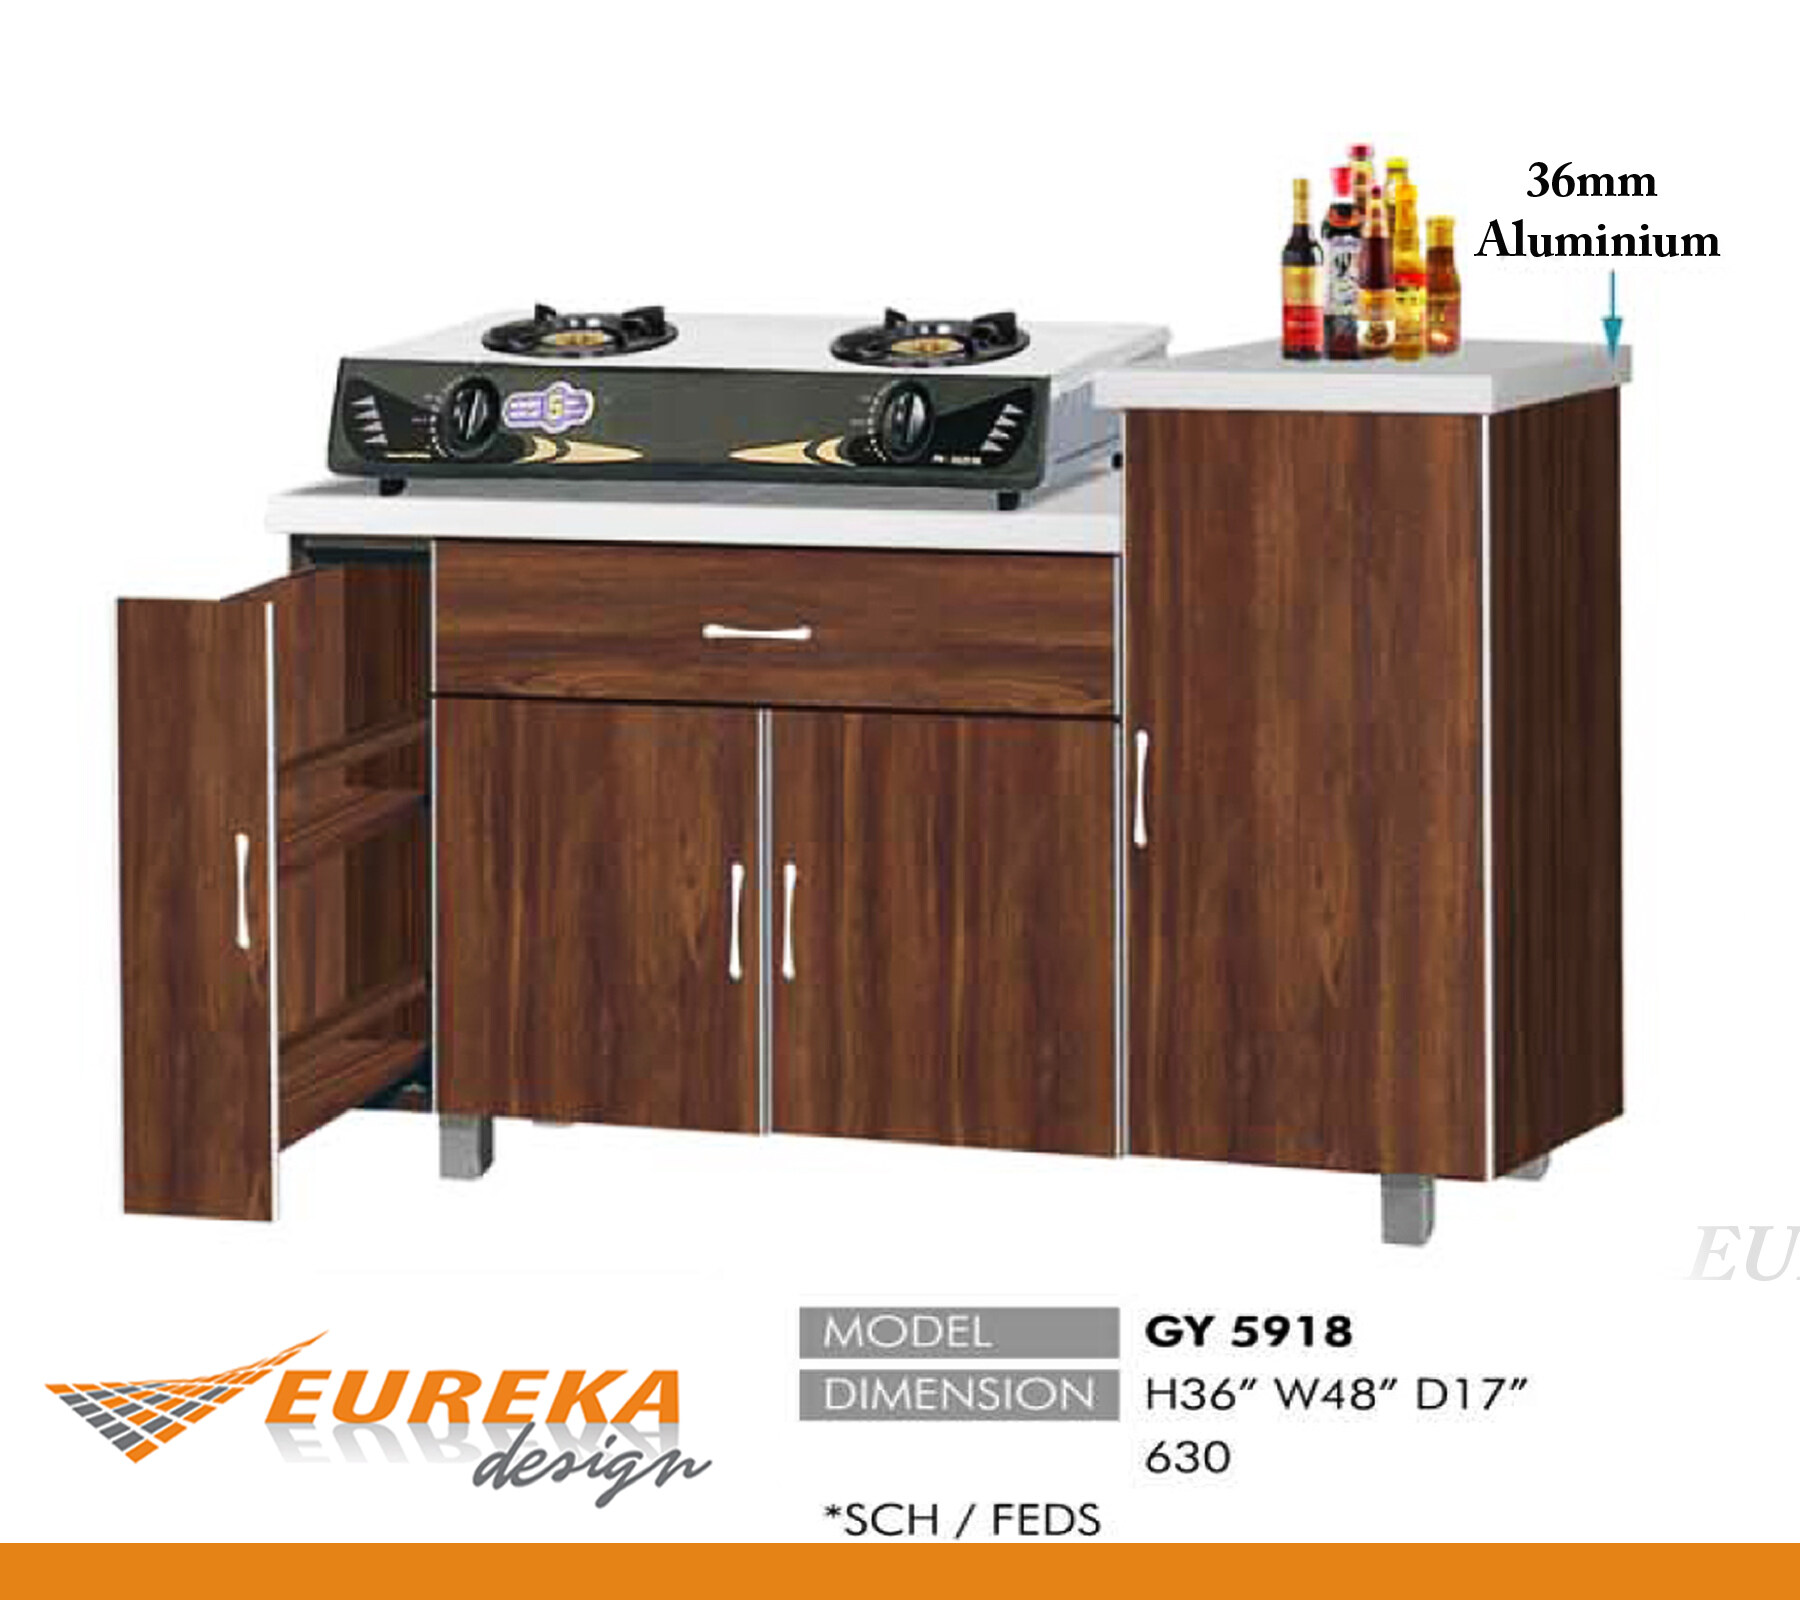 Eureka Design 4ft Gas Kitchen Cabinet Kabinet Dapur Gas Deliver Installation Within Klang Valley Lazada